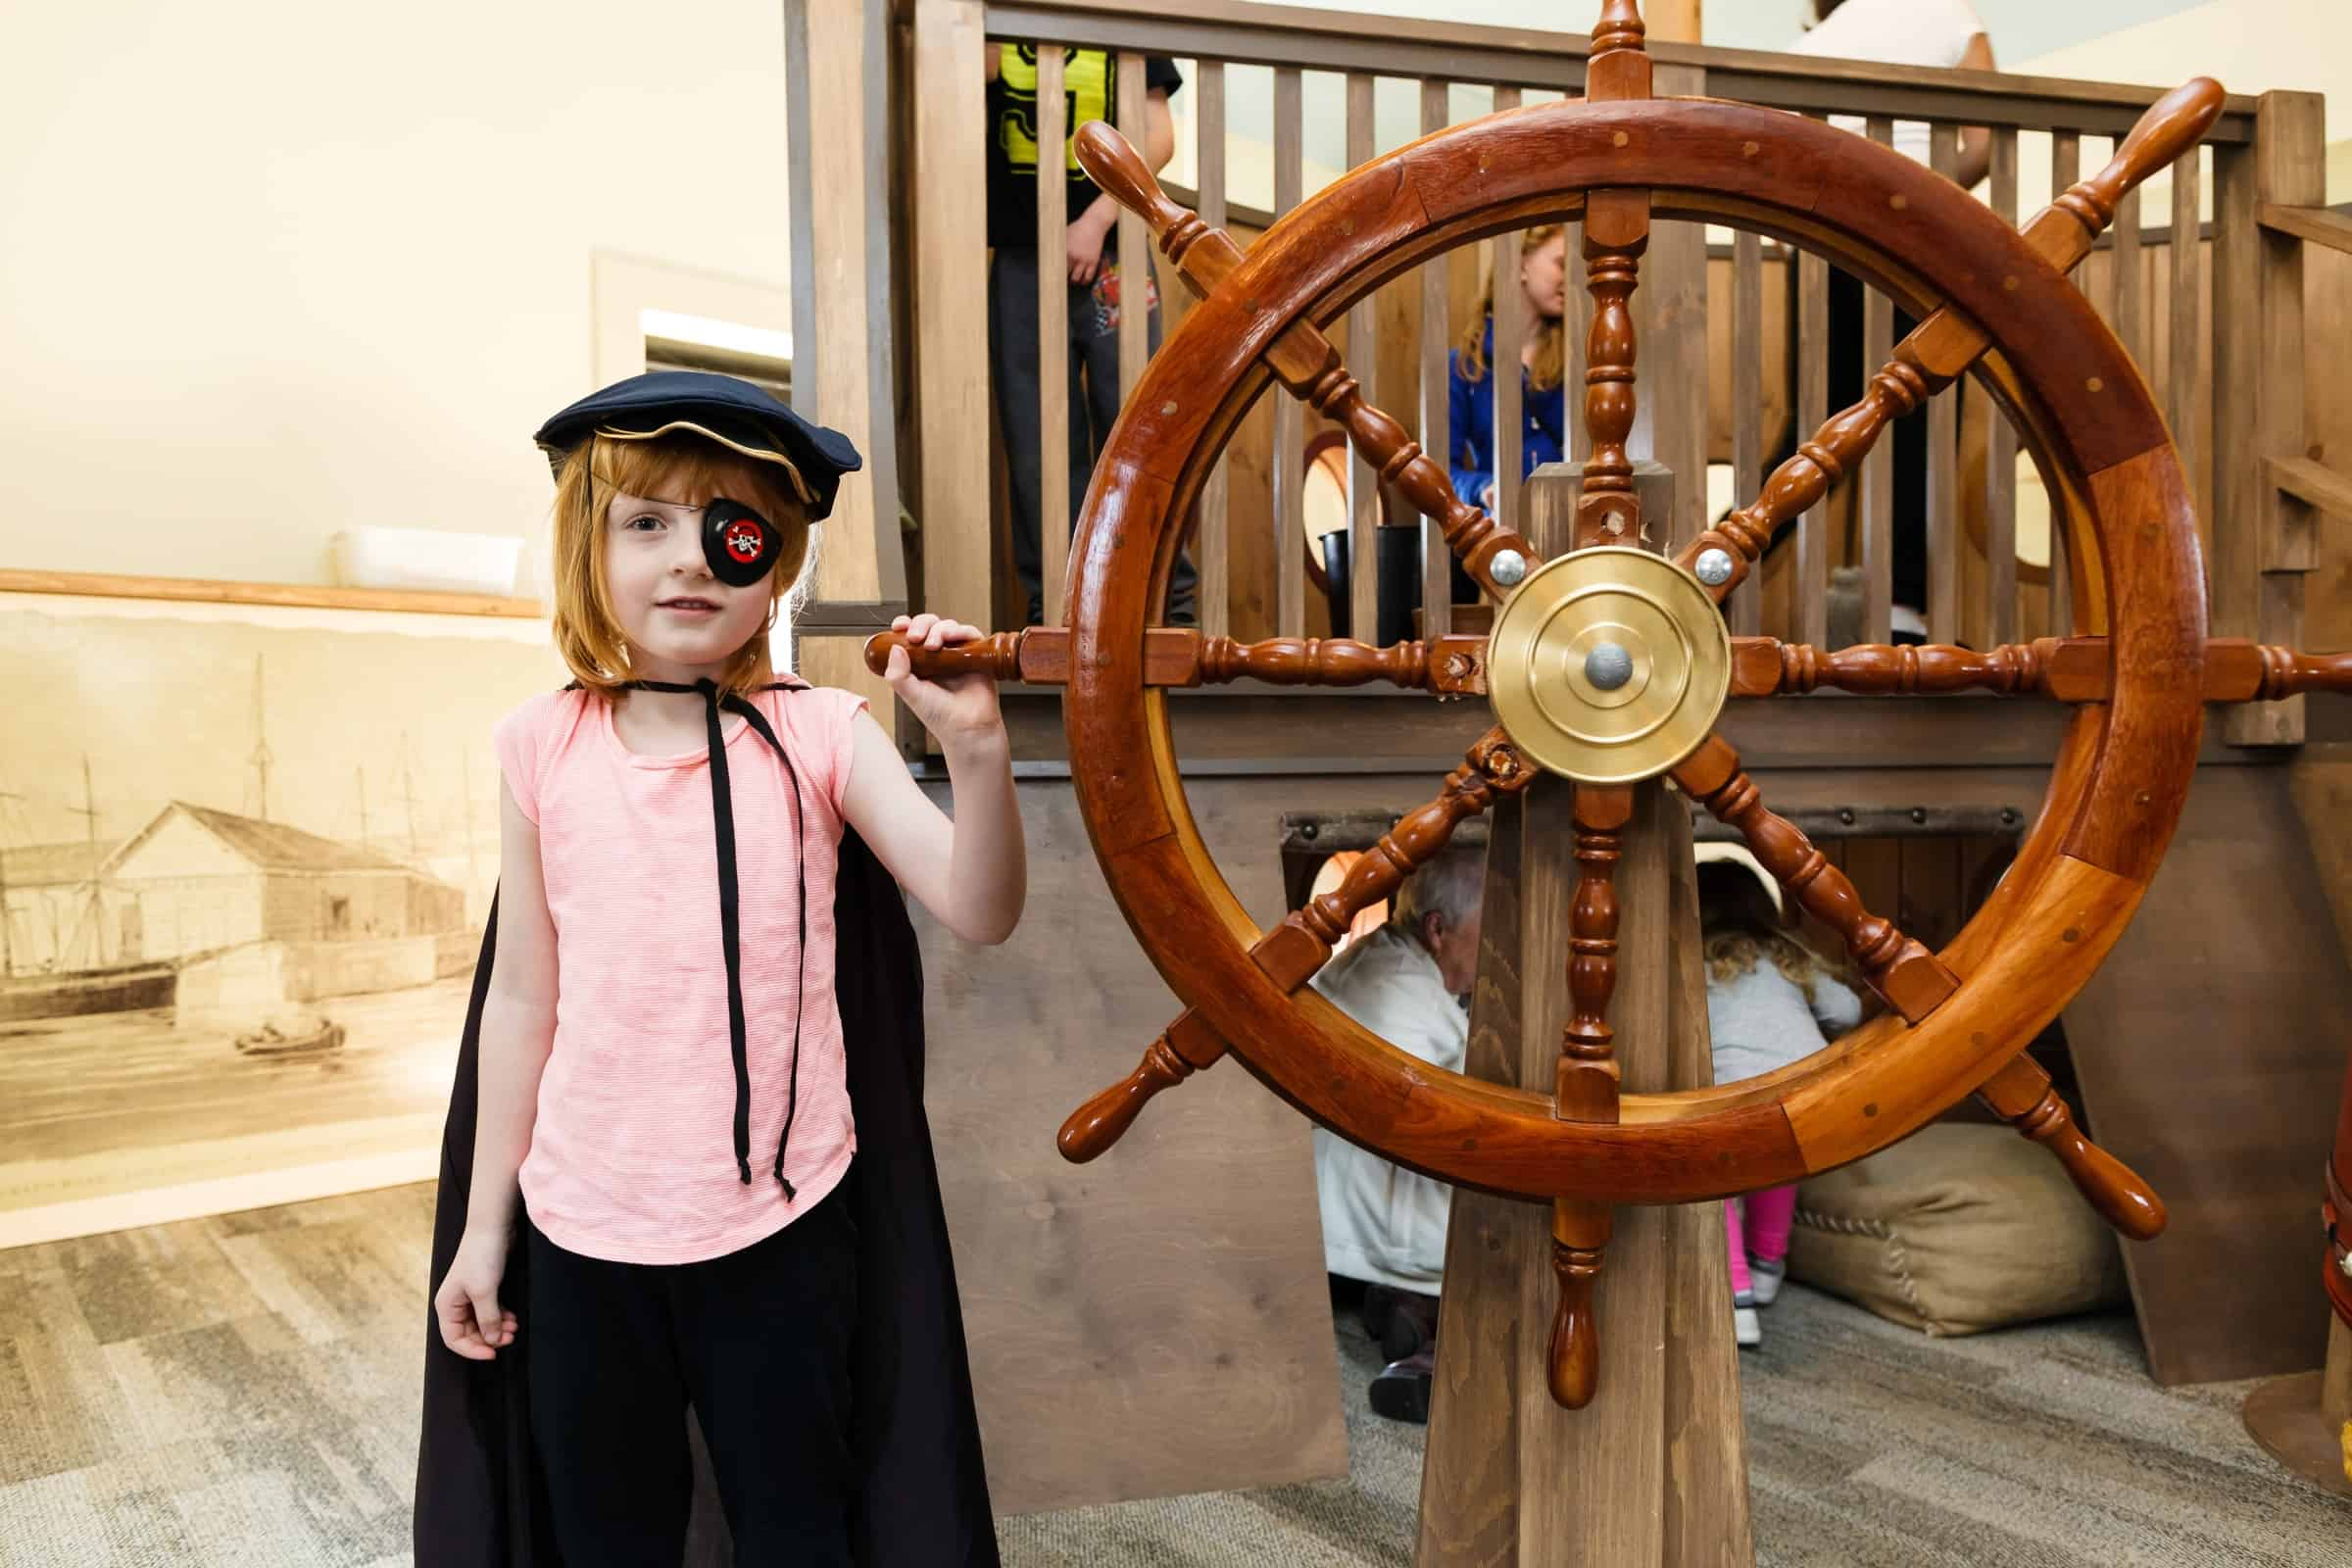 Playing pirate at the Hamilton Children's Museum